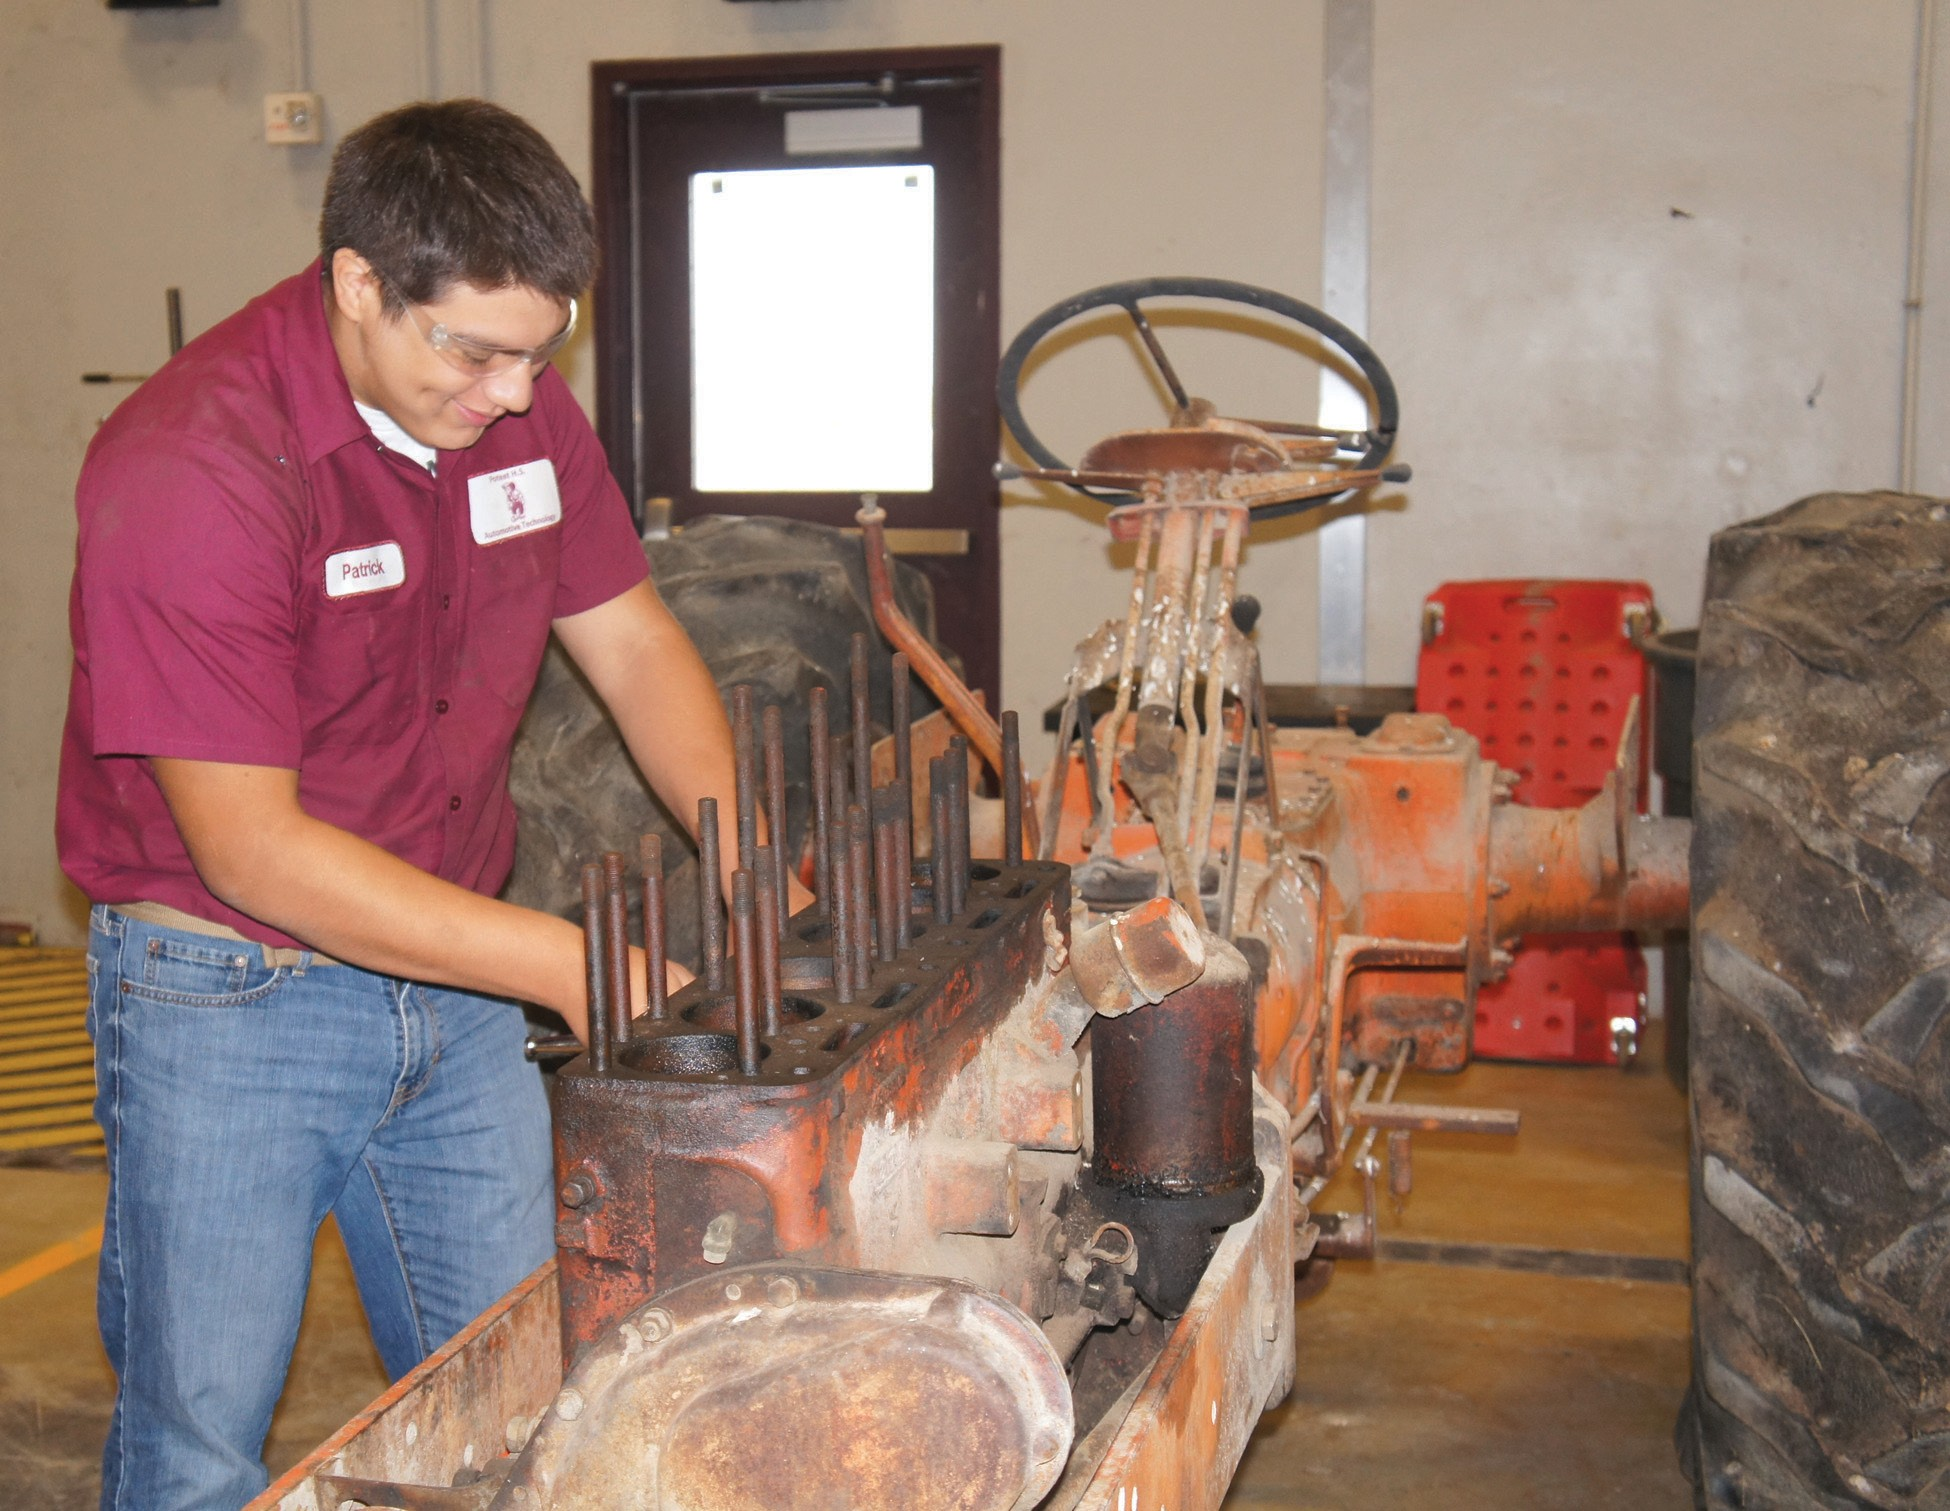 Poteet HS programs prepare students for Auto Tech, Cosmetology